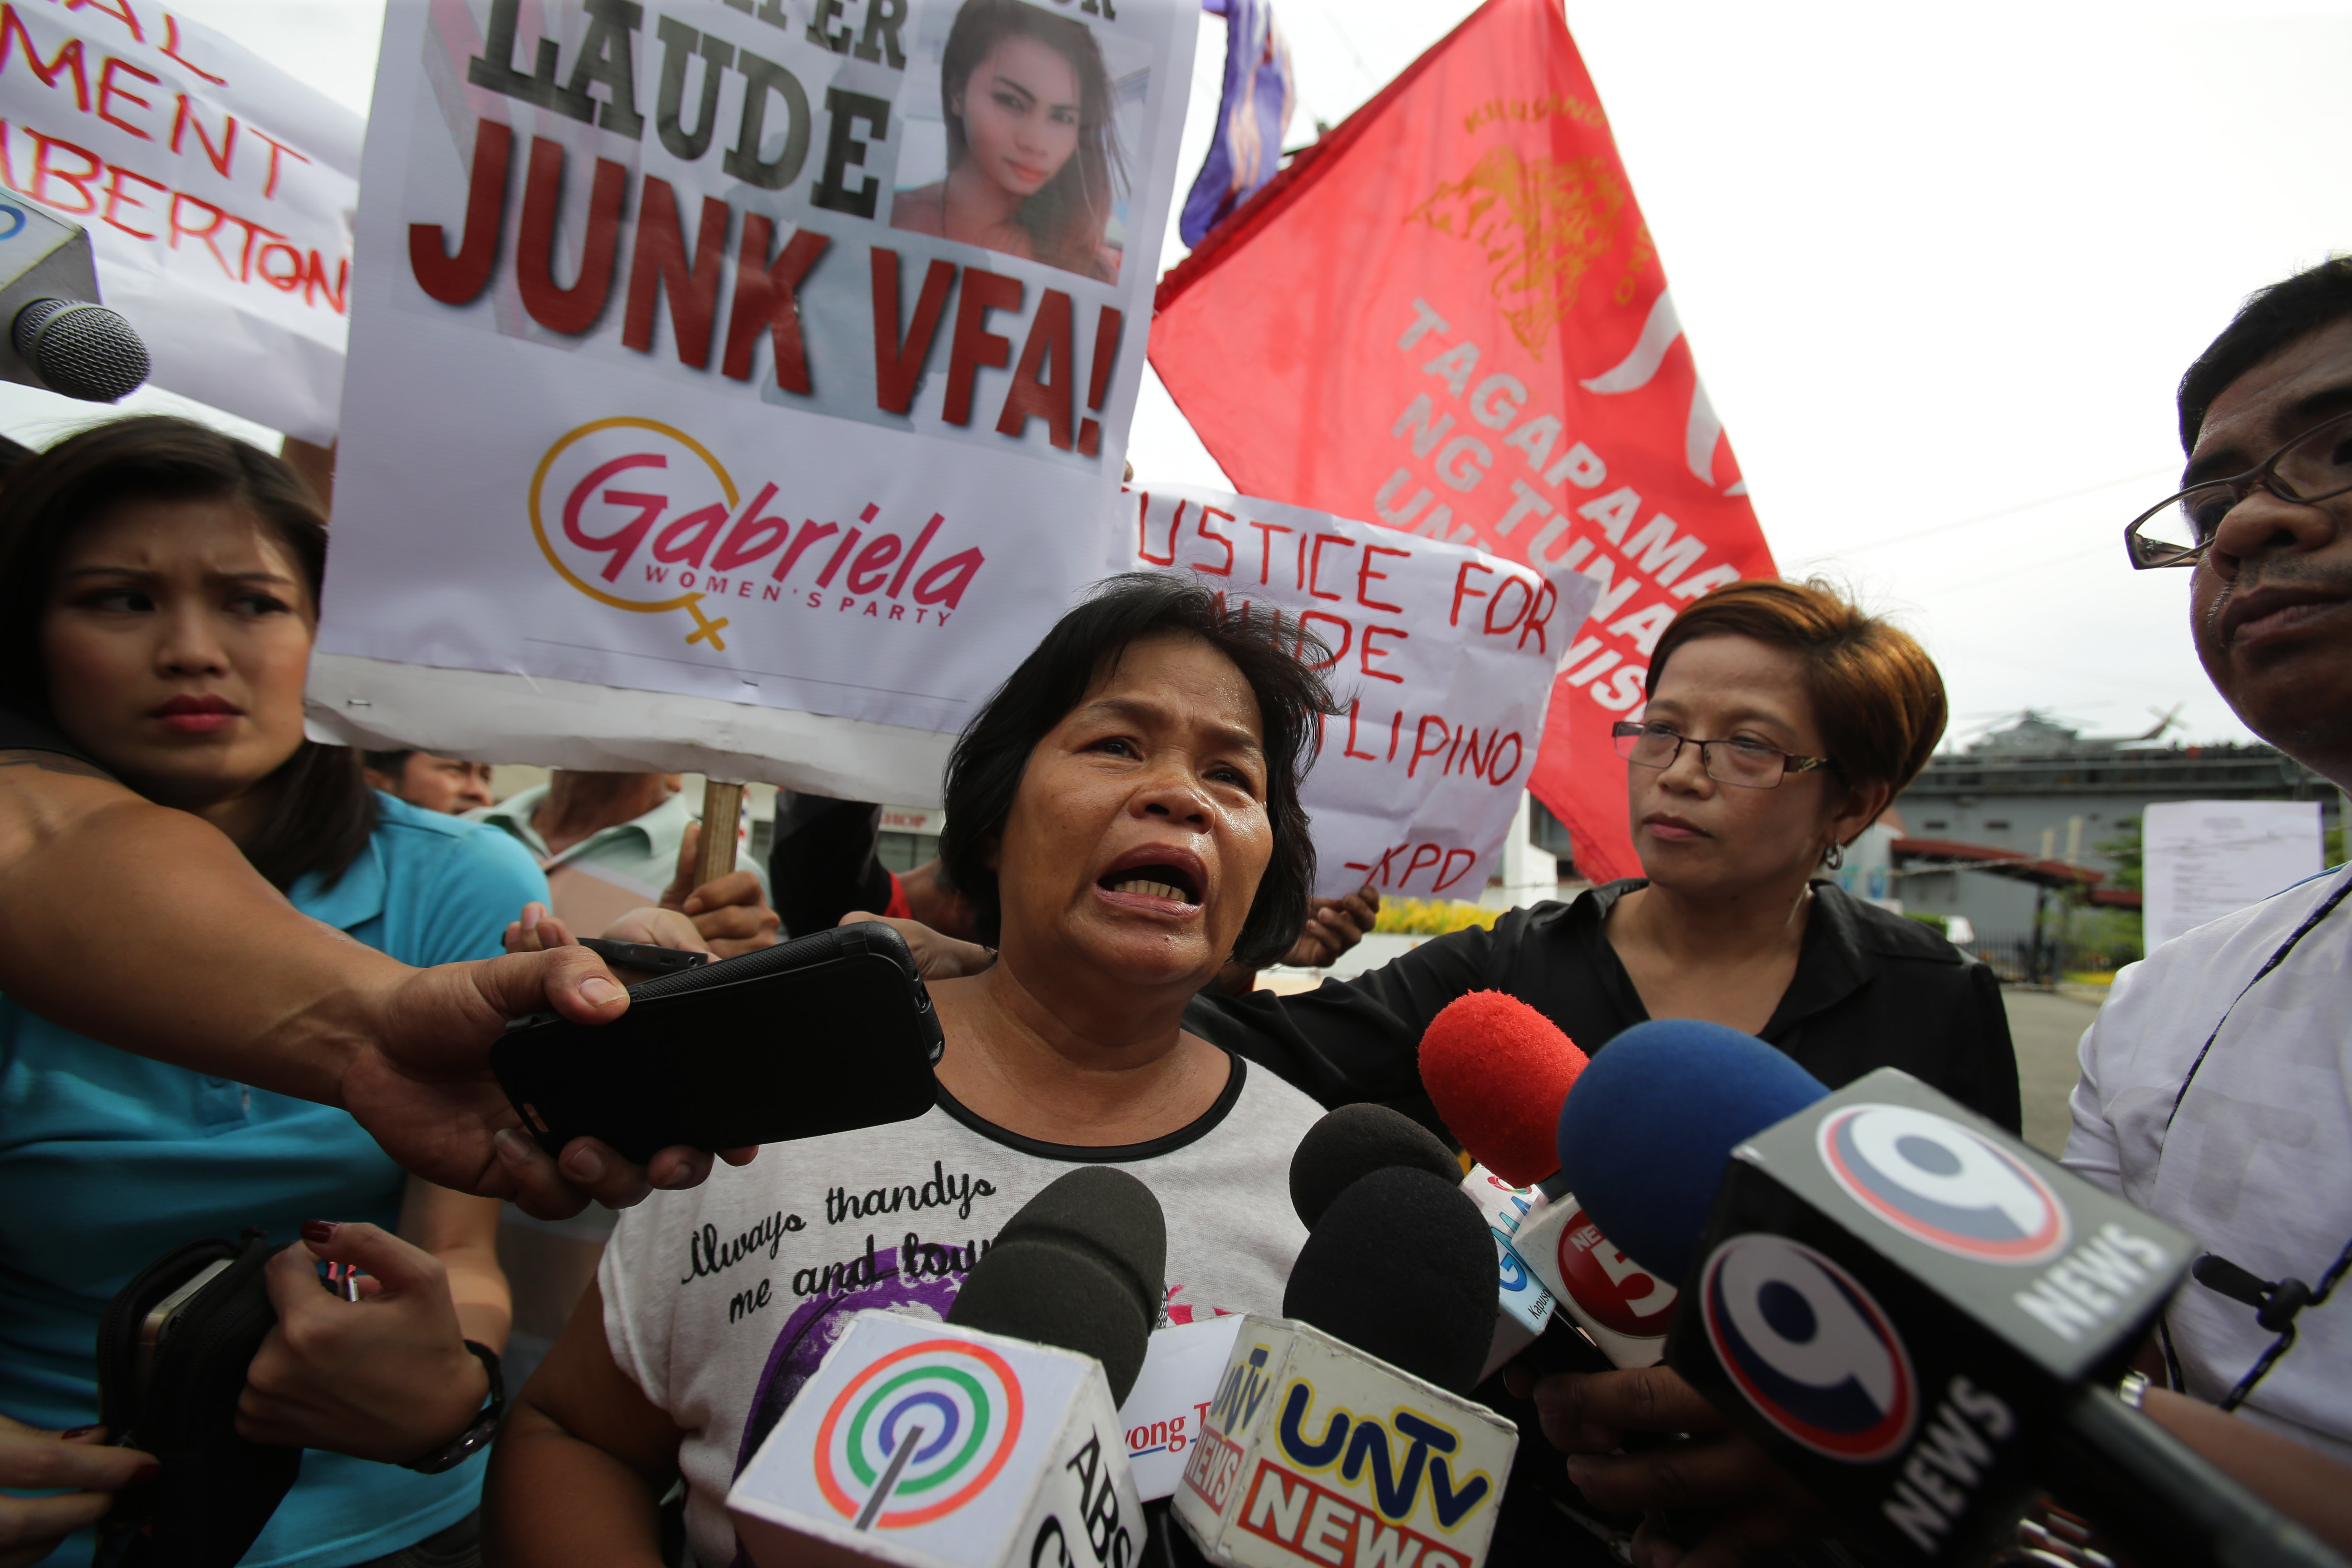 Julita Laude, mother of killed transgender Jennifer Laude, talks to reporters during a rally near the USS Peleliu, where U.S. Marine Pfc. Joseph Scott Pemberton is said to be held, at the Subic Bay free port, Zambales province, northern Philippines. Oct. 18, 2014.